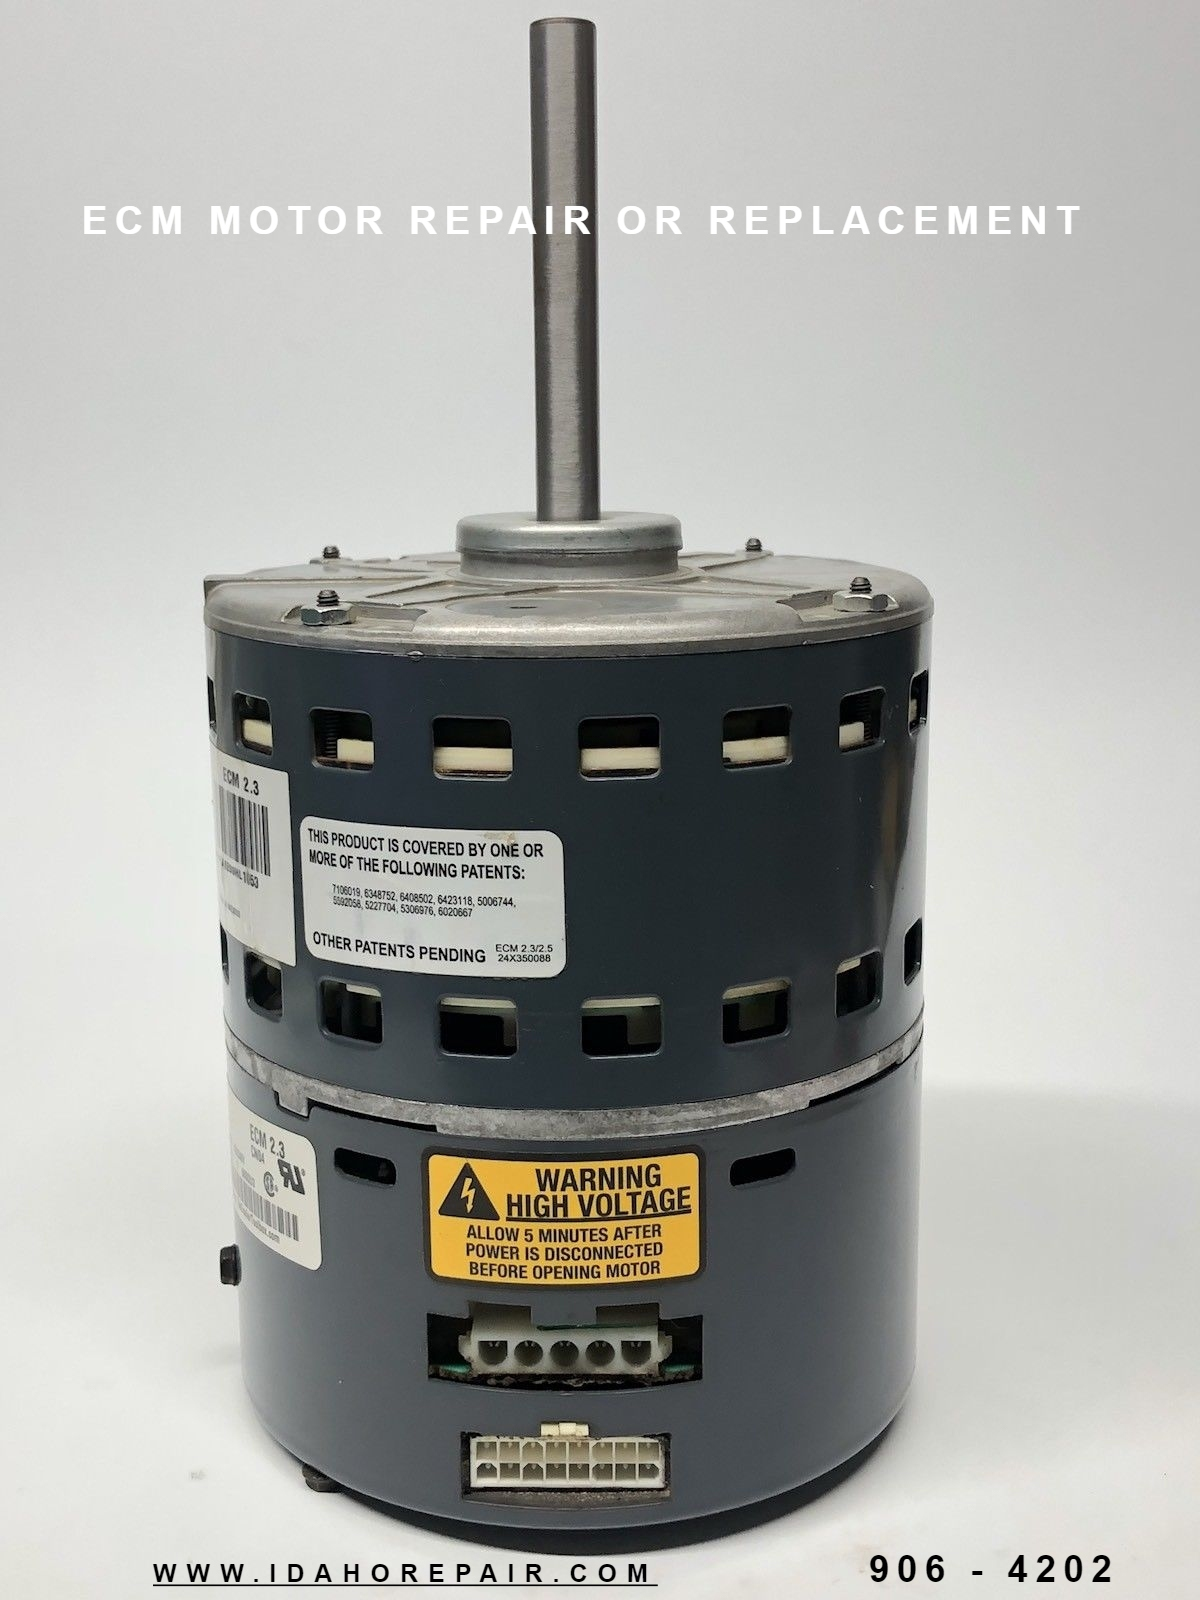 Gas furnace repair in boise furnace replacement 83705 for Ecm blower motor tester